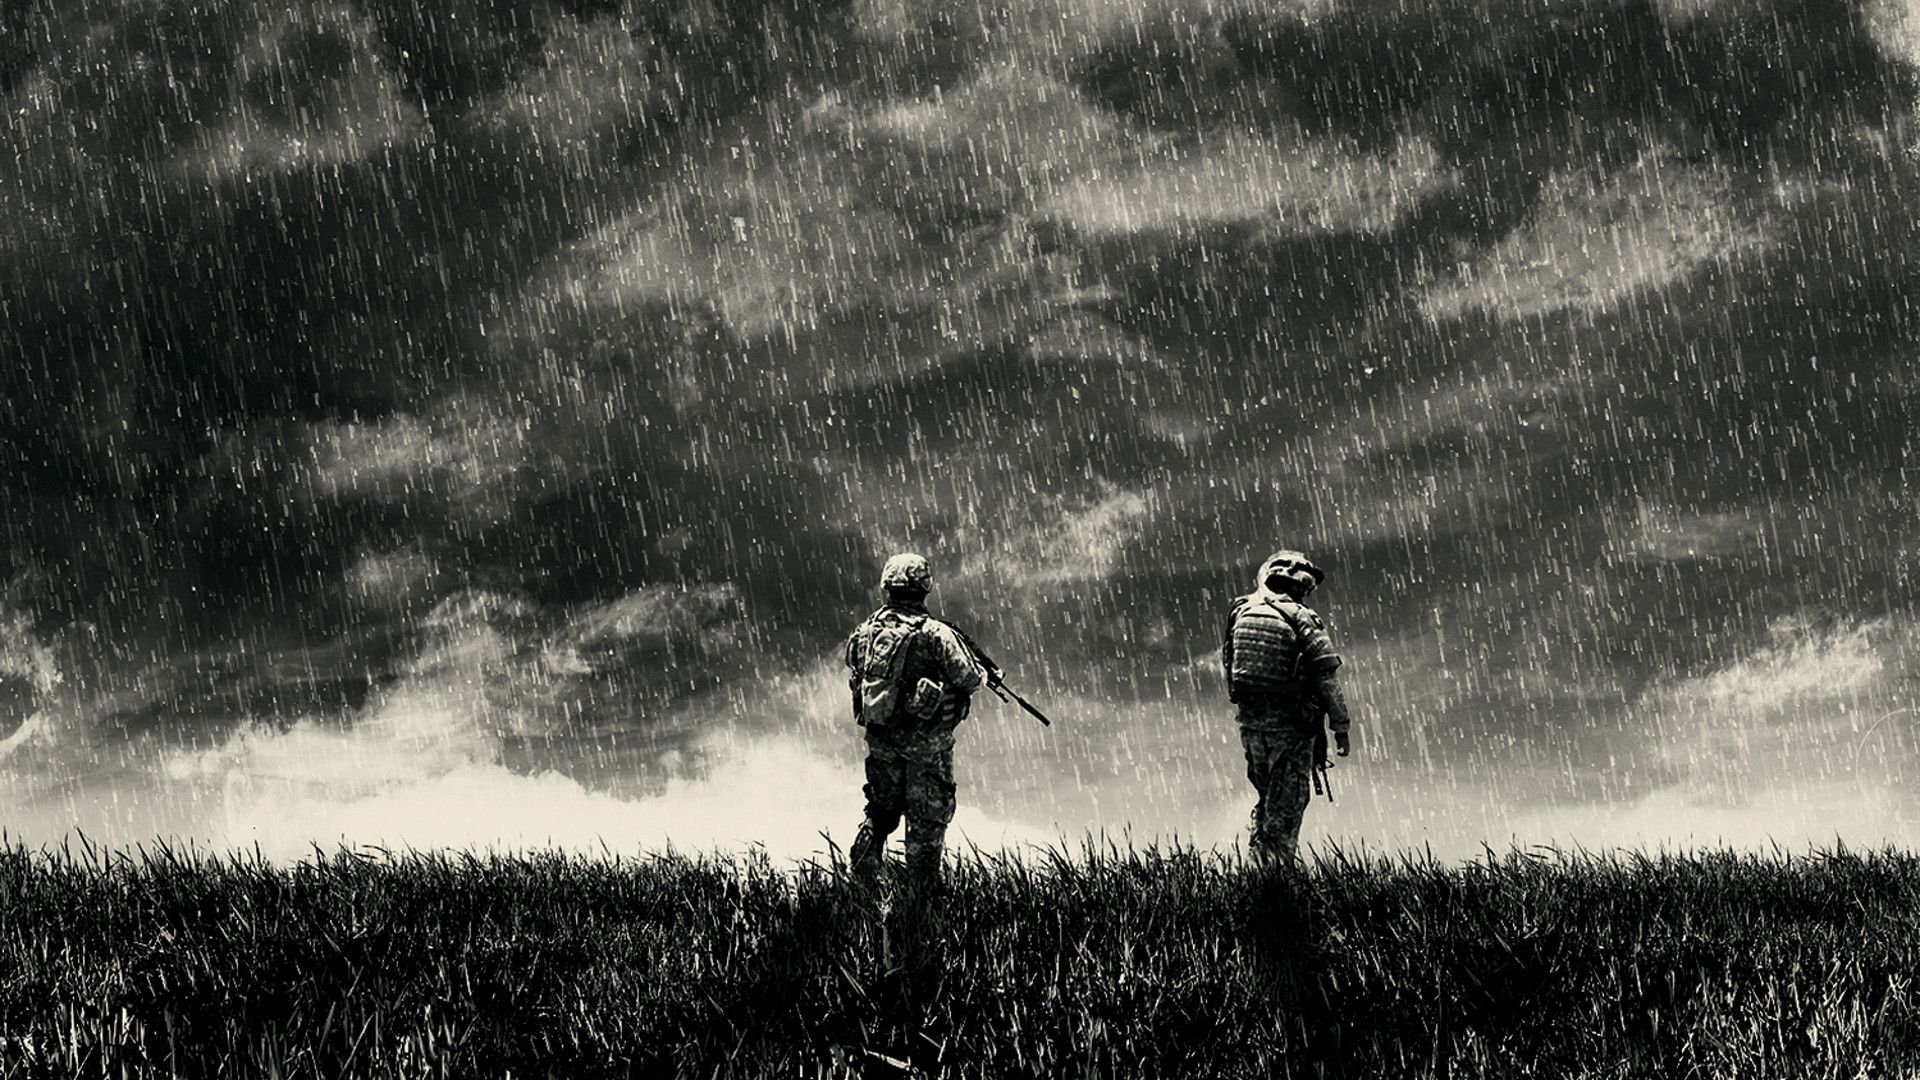 Soldiers in the rain